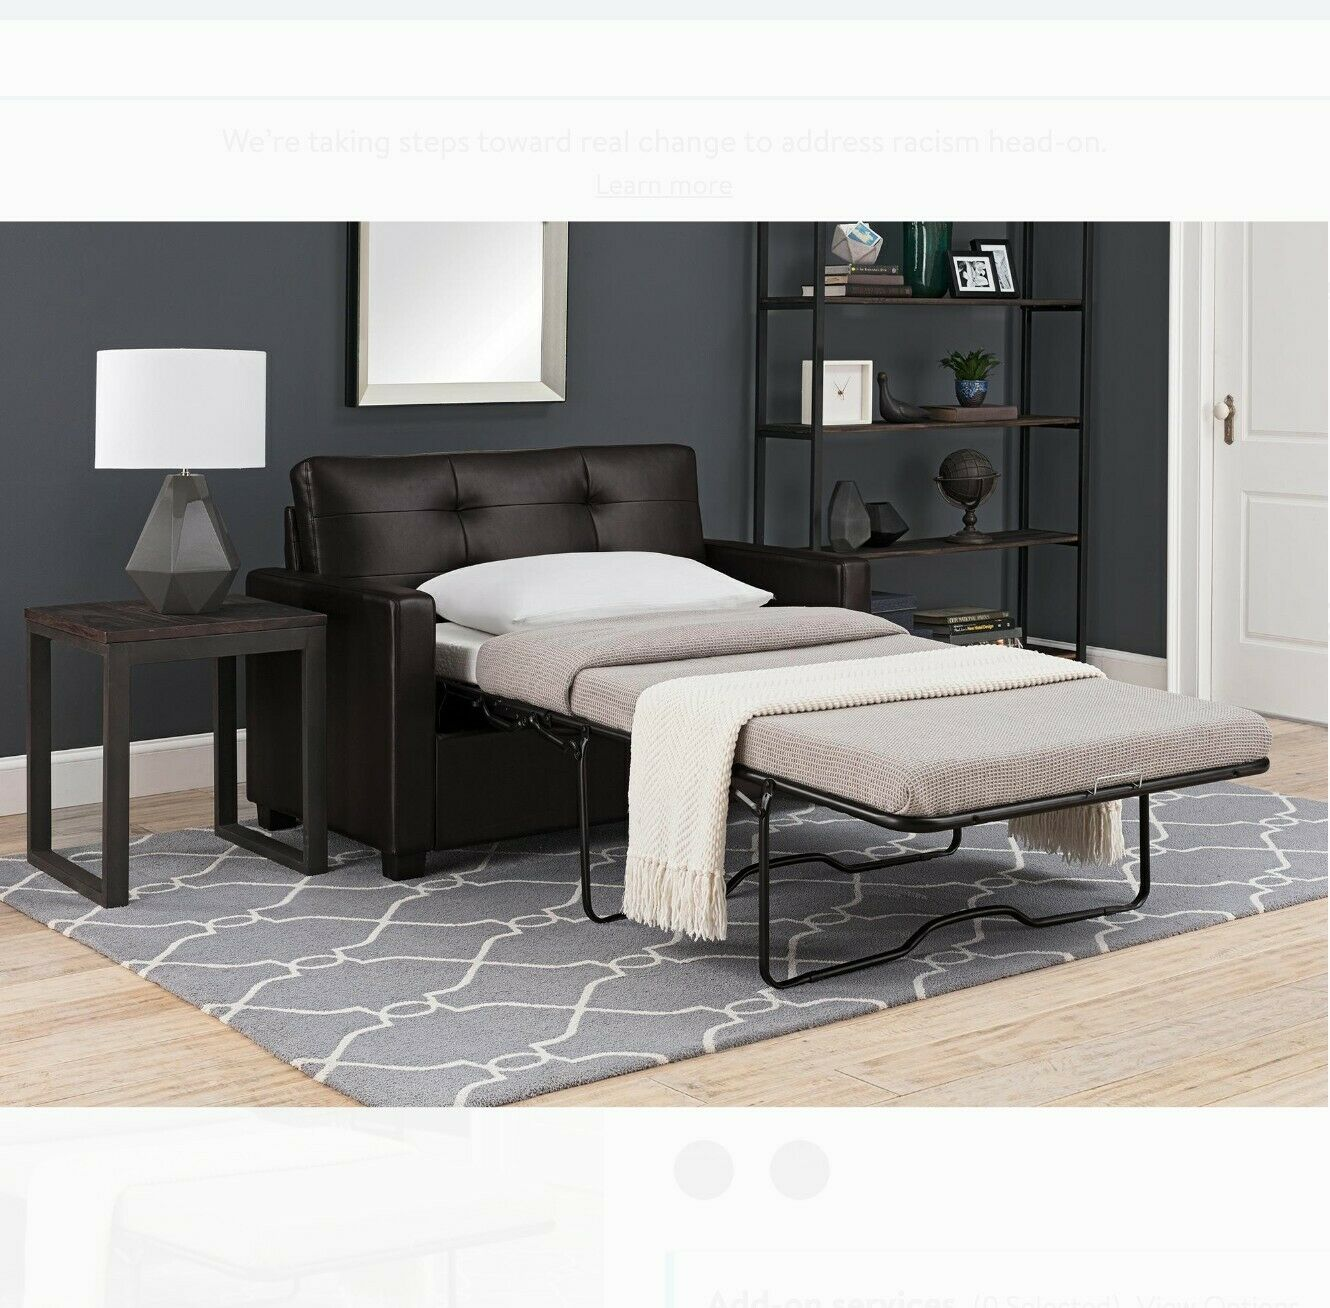 Us Pride Furniture Kathy Reversible 5 1 Foam Fabric Loveseat And Sofa Bed Couch For Sale Online Ebay